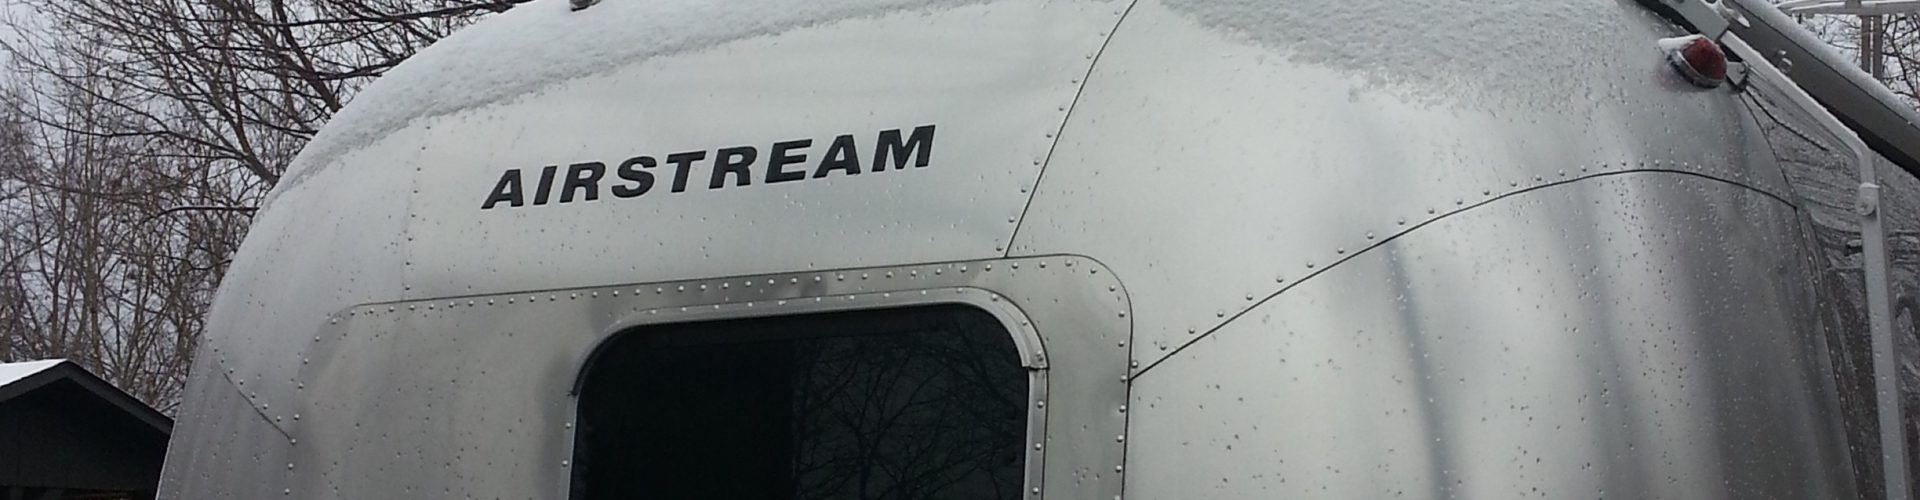 Surviving Snow and Ice in an Airstream